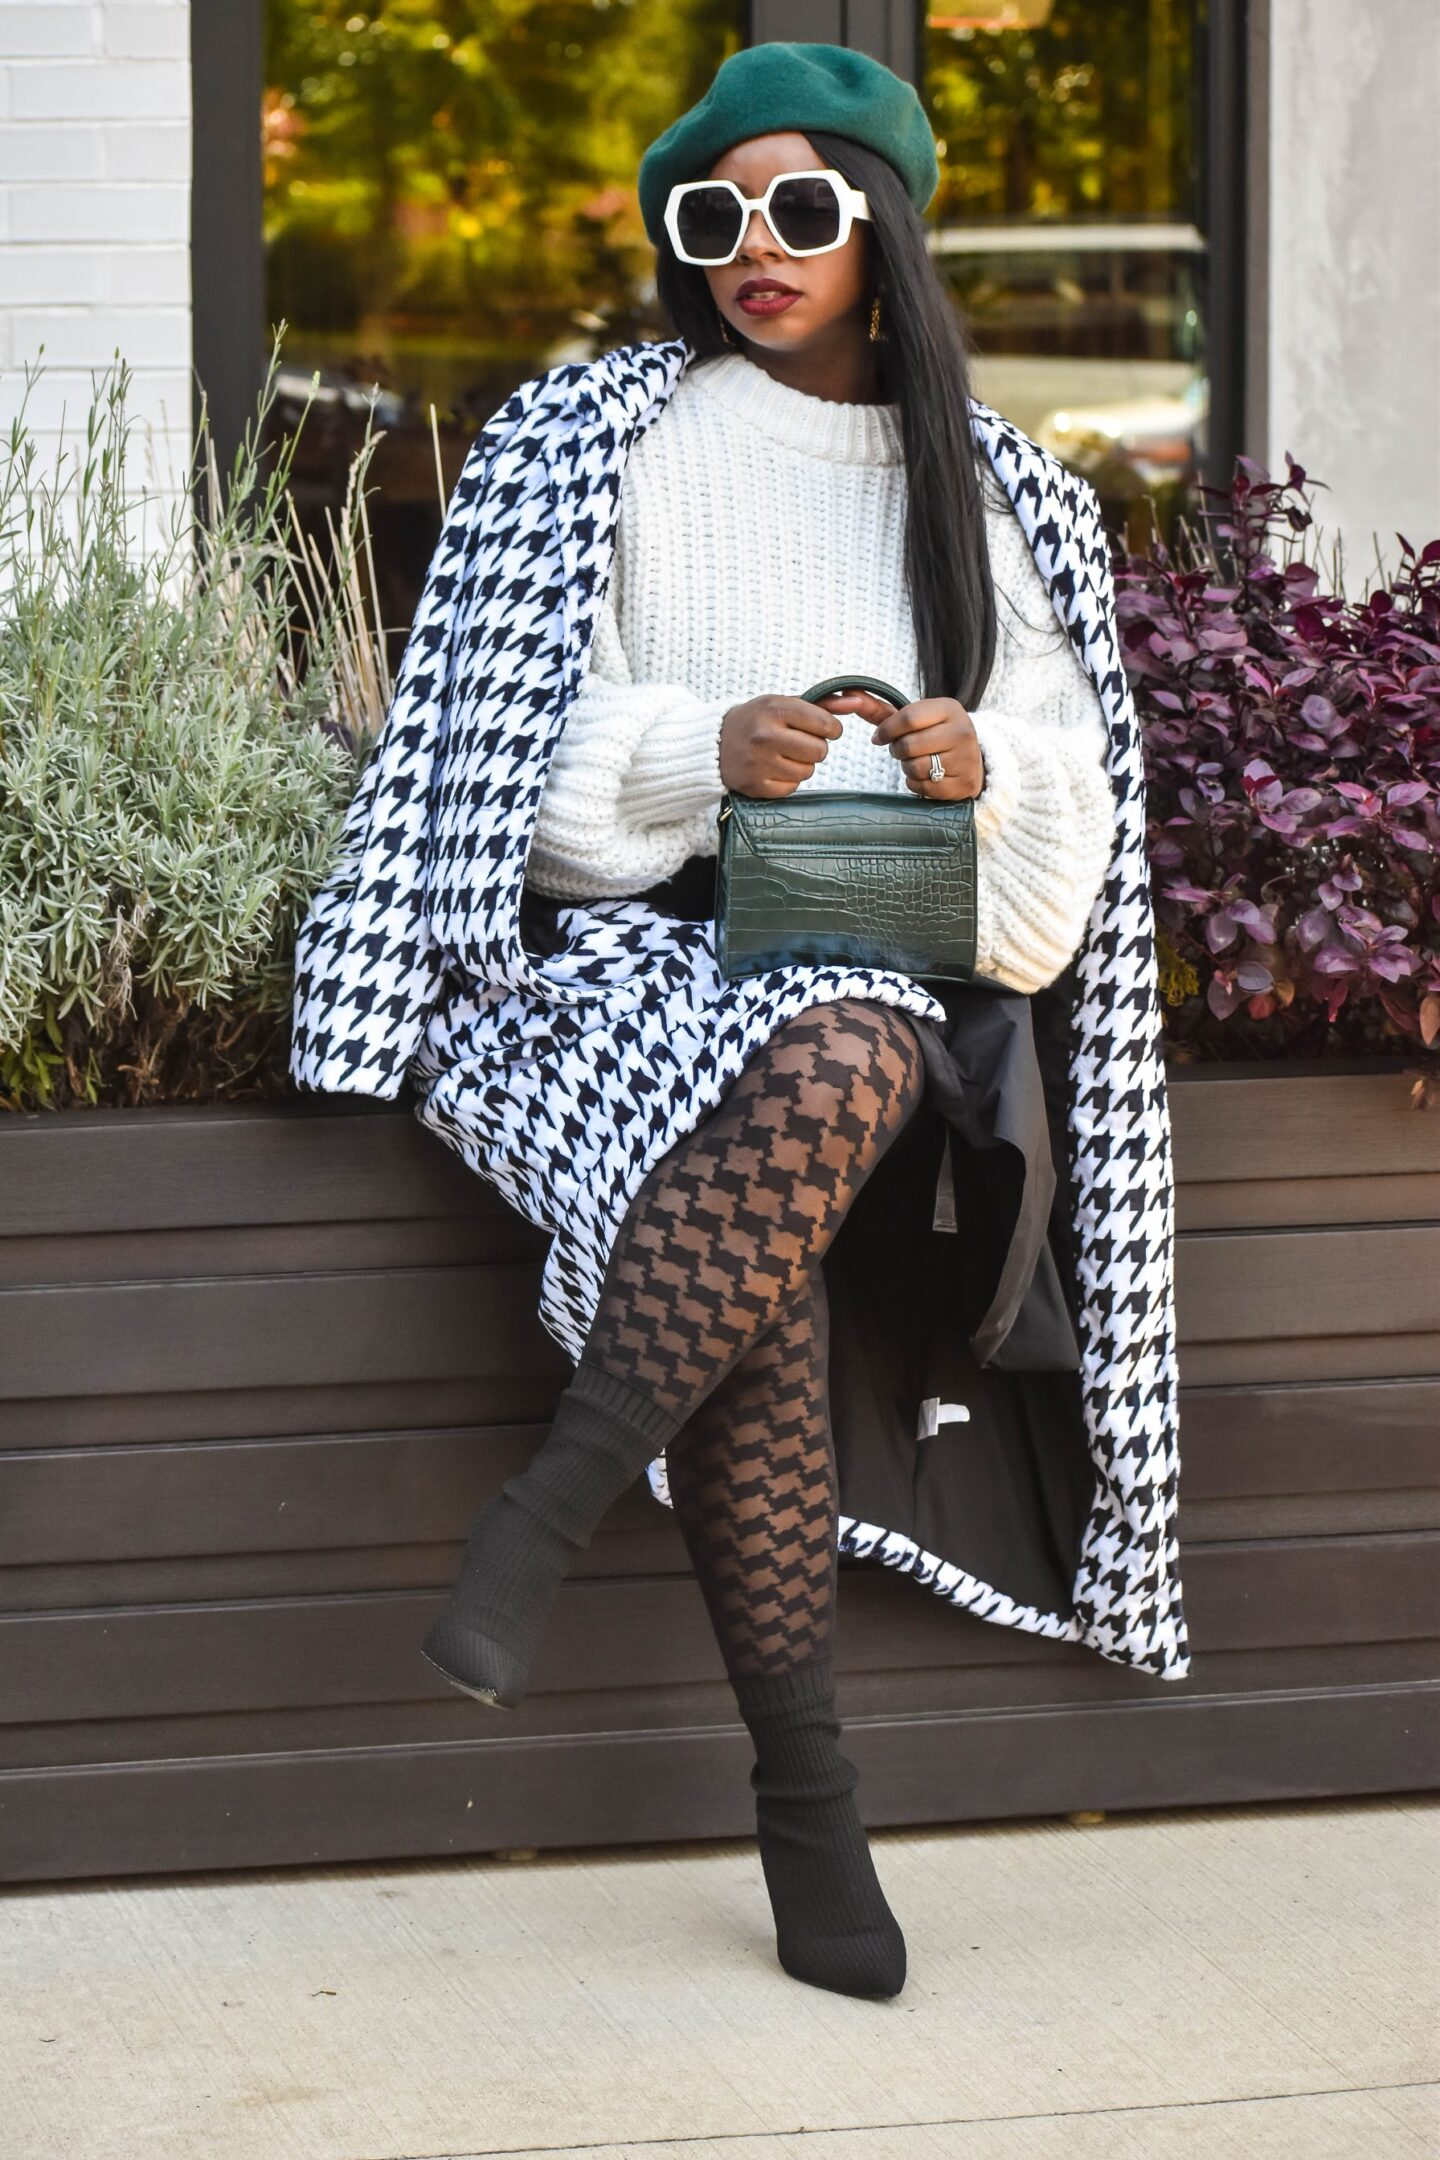 The Bold and Beautiful; Houndstooth Print and how to Rock it Effortlessly